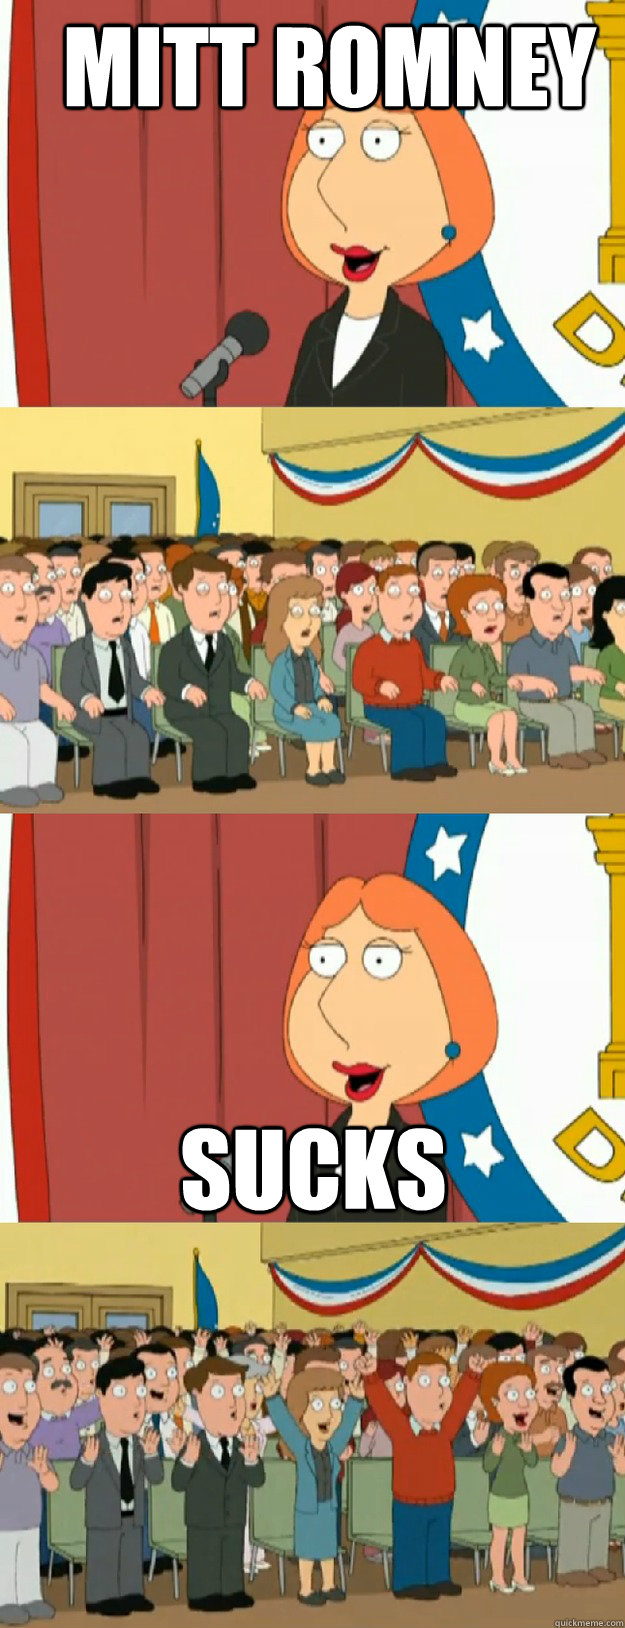 mitt romney sucks - Lois Griffin